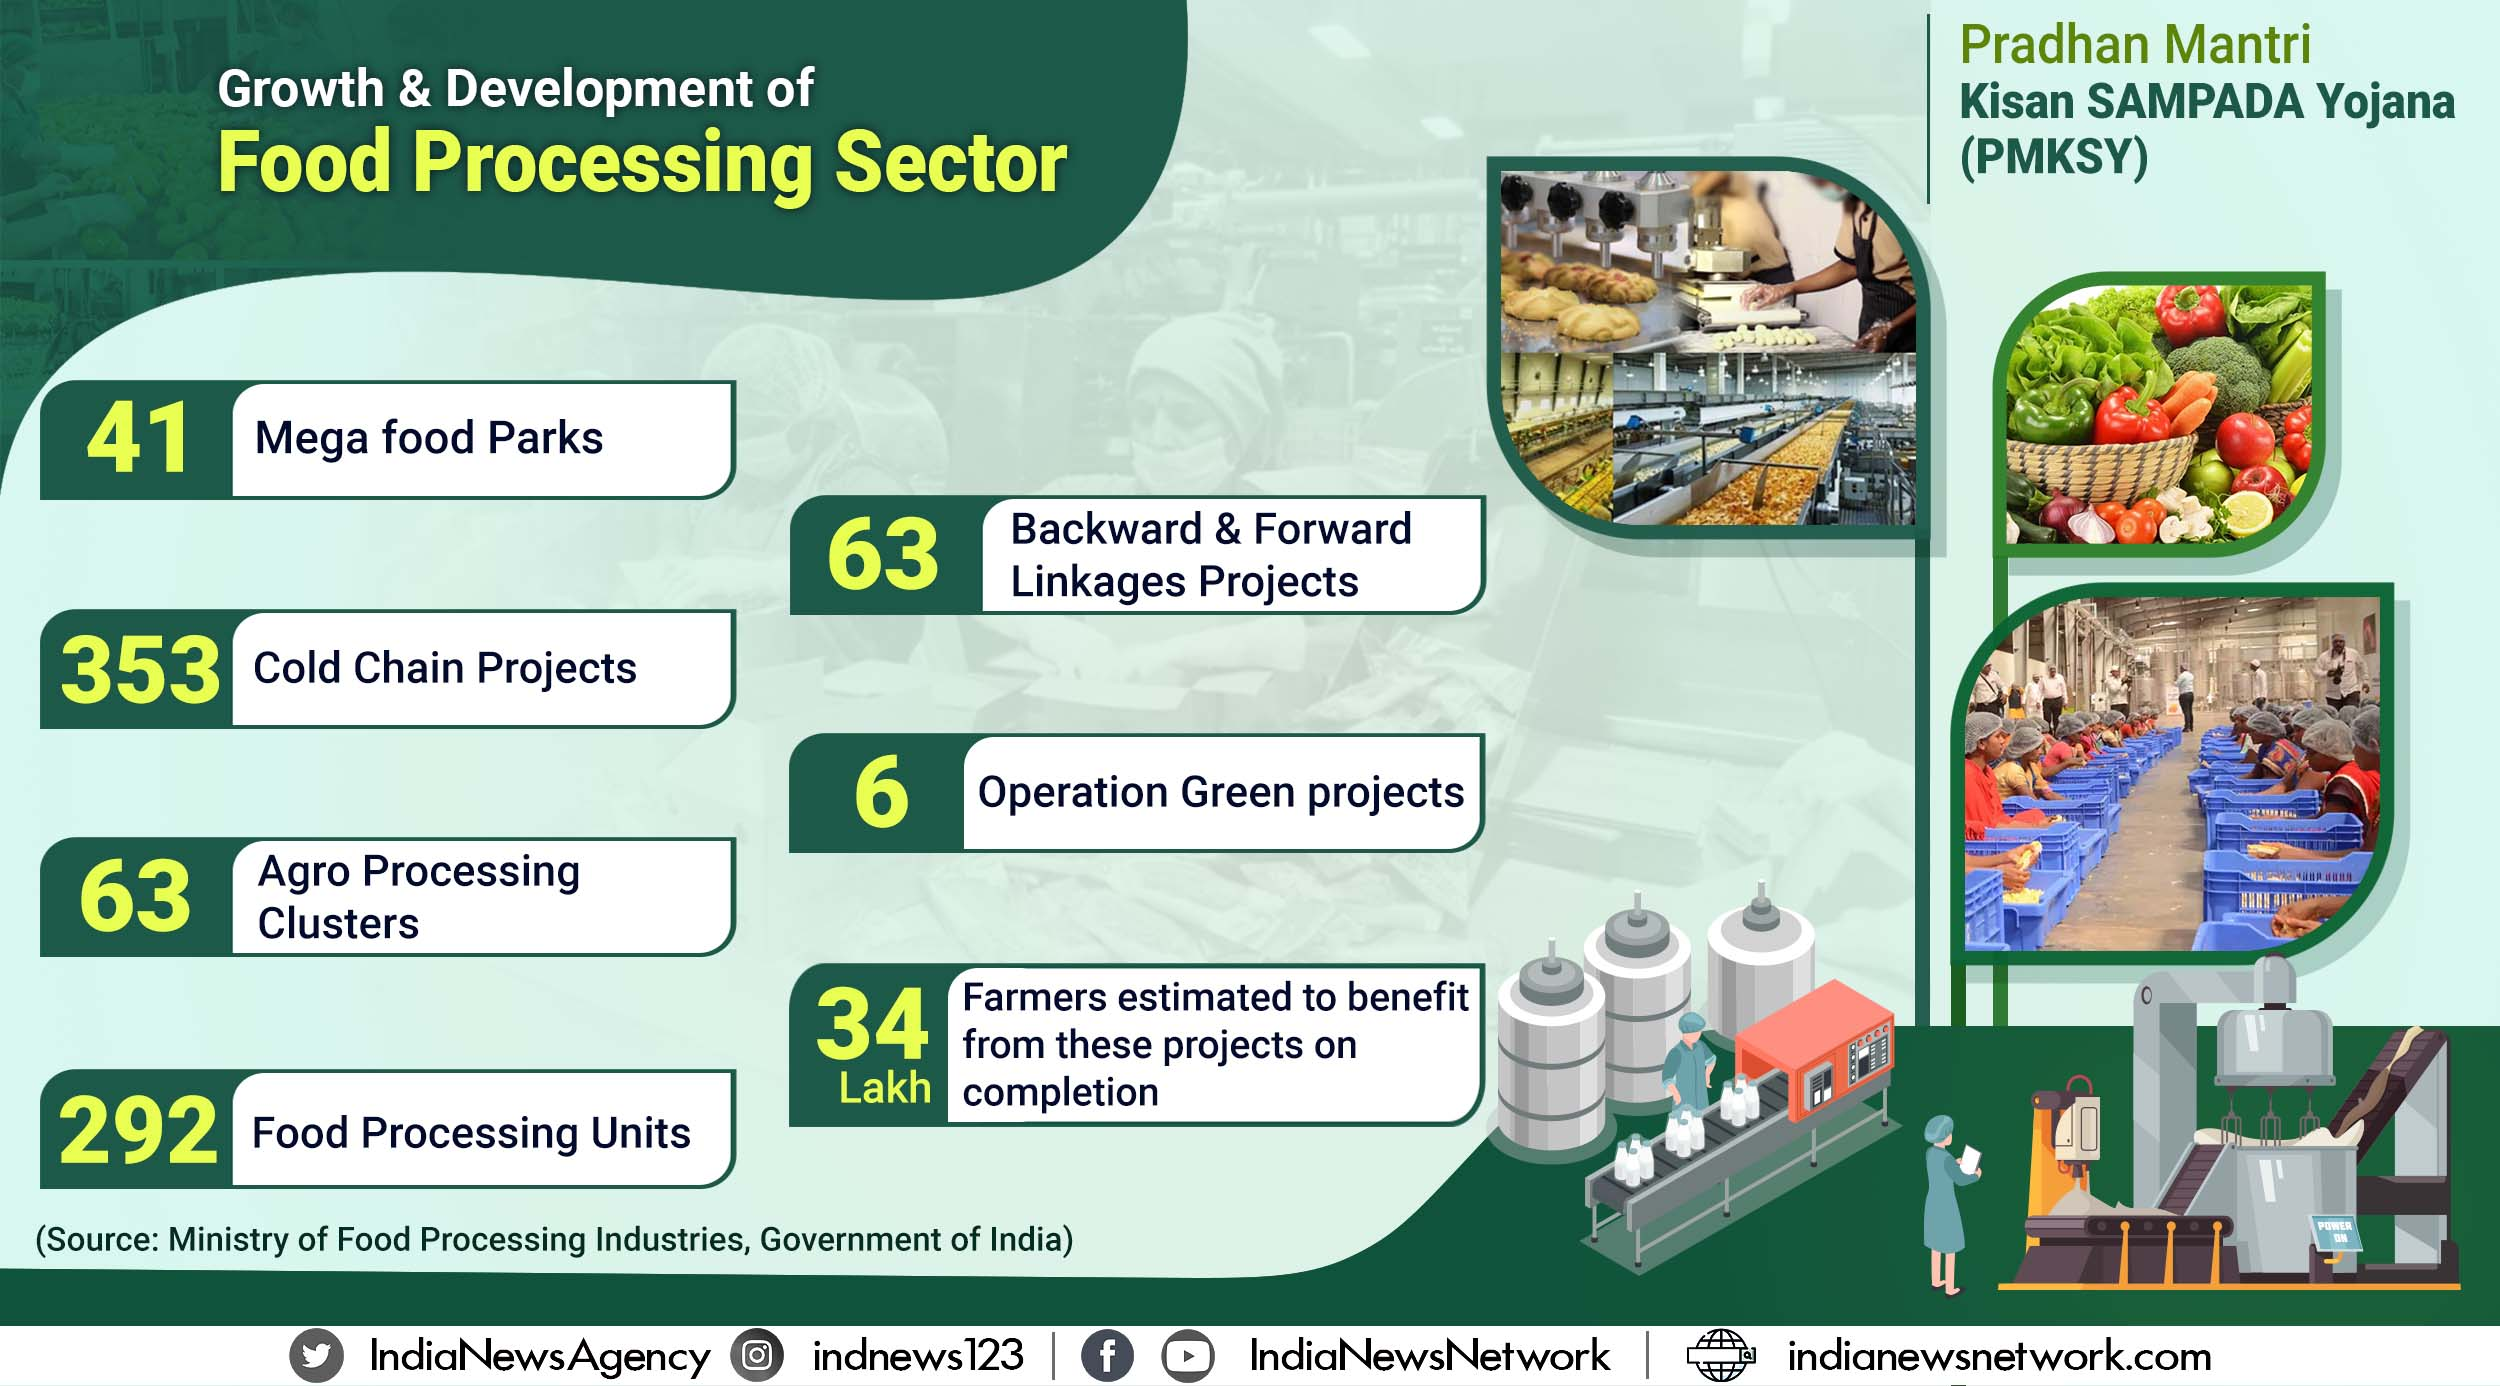 34 lakh farmers to benefit from food processing projects under central scheme